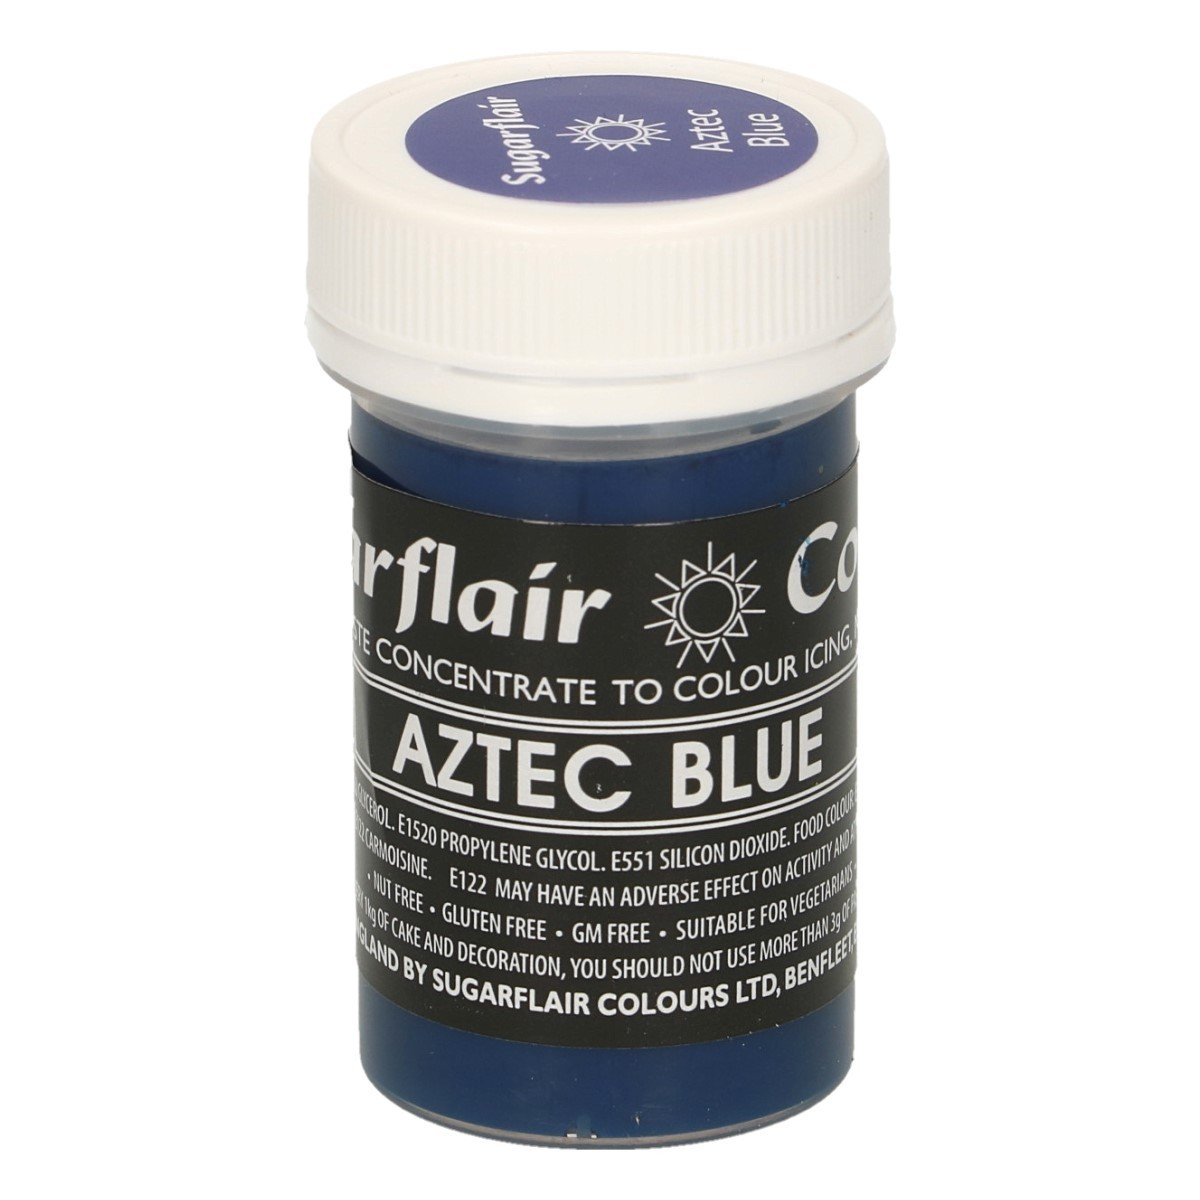 Sugarflair Concentrated Paste Aztel Blue 1.jpg